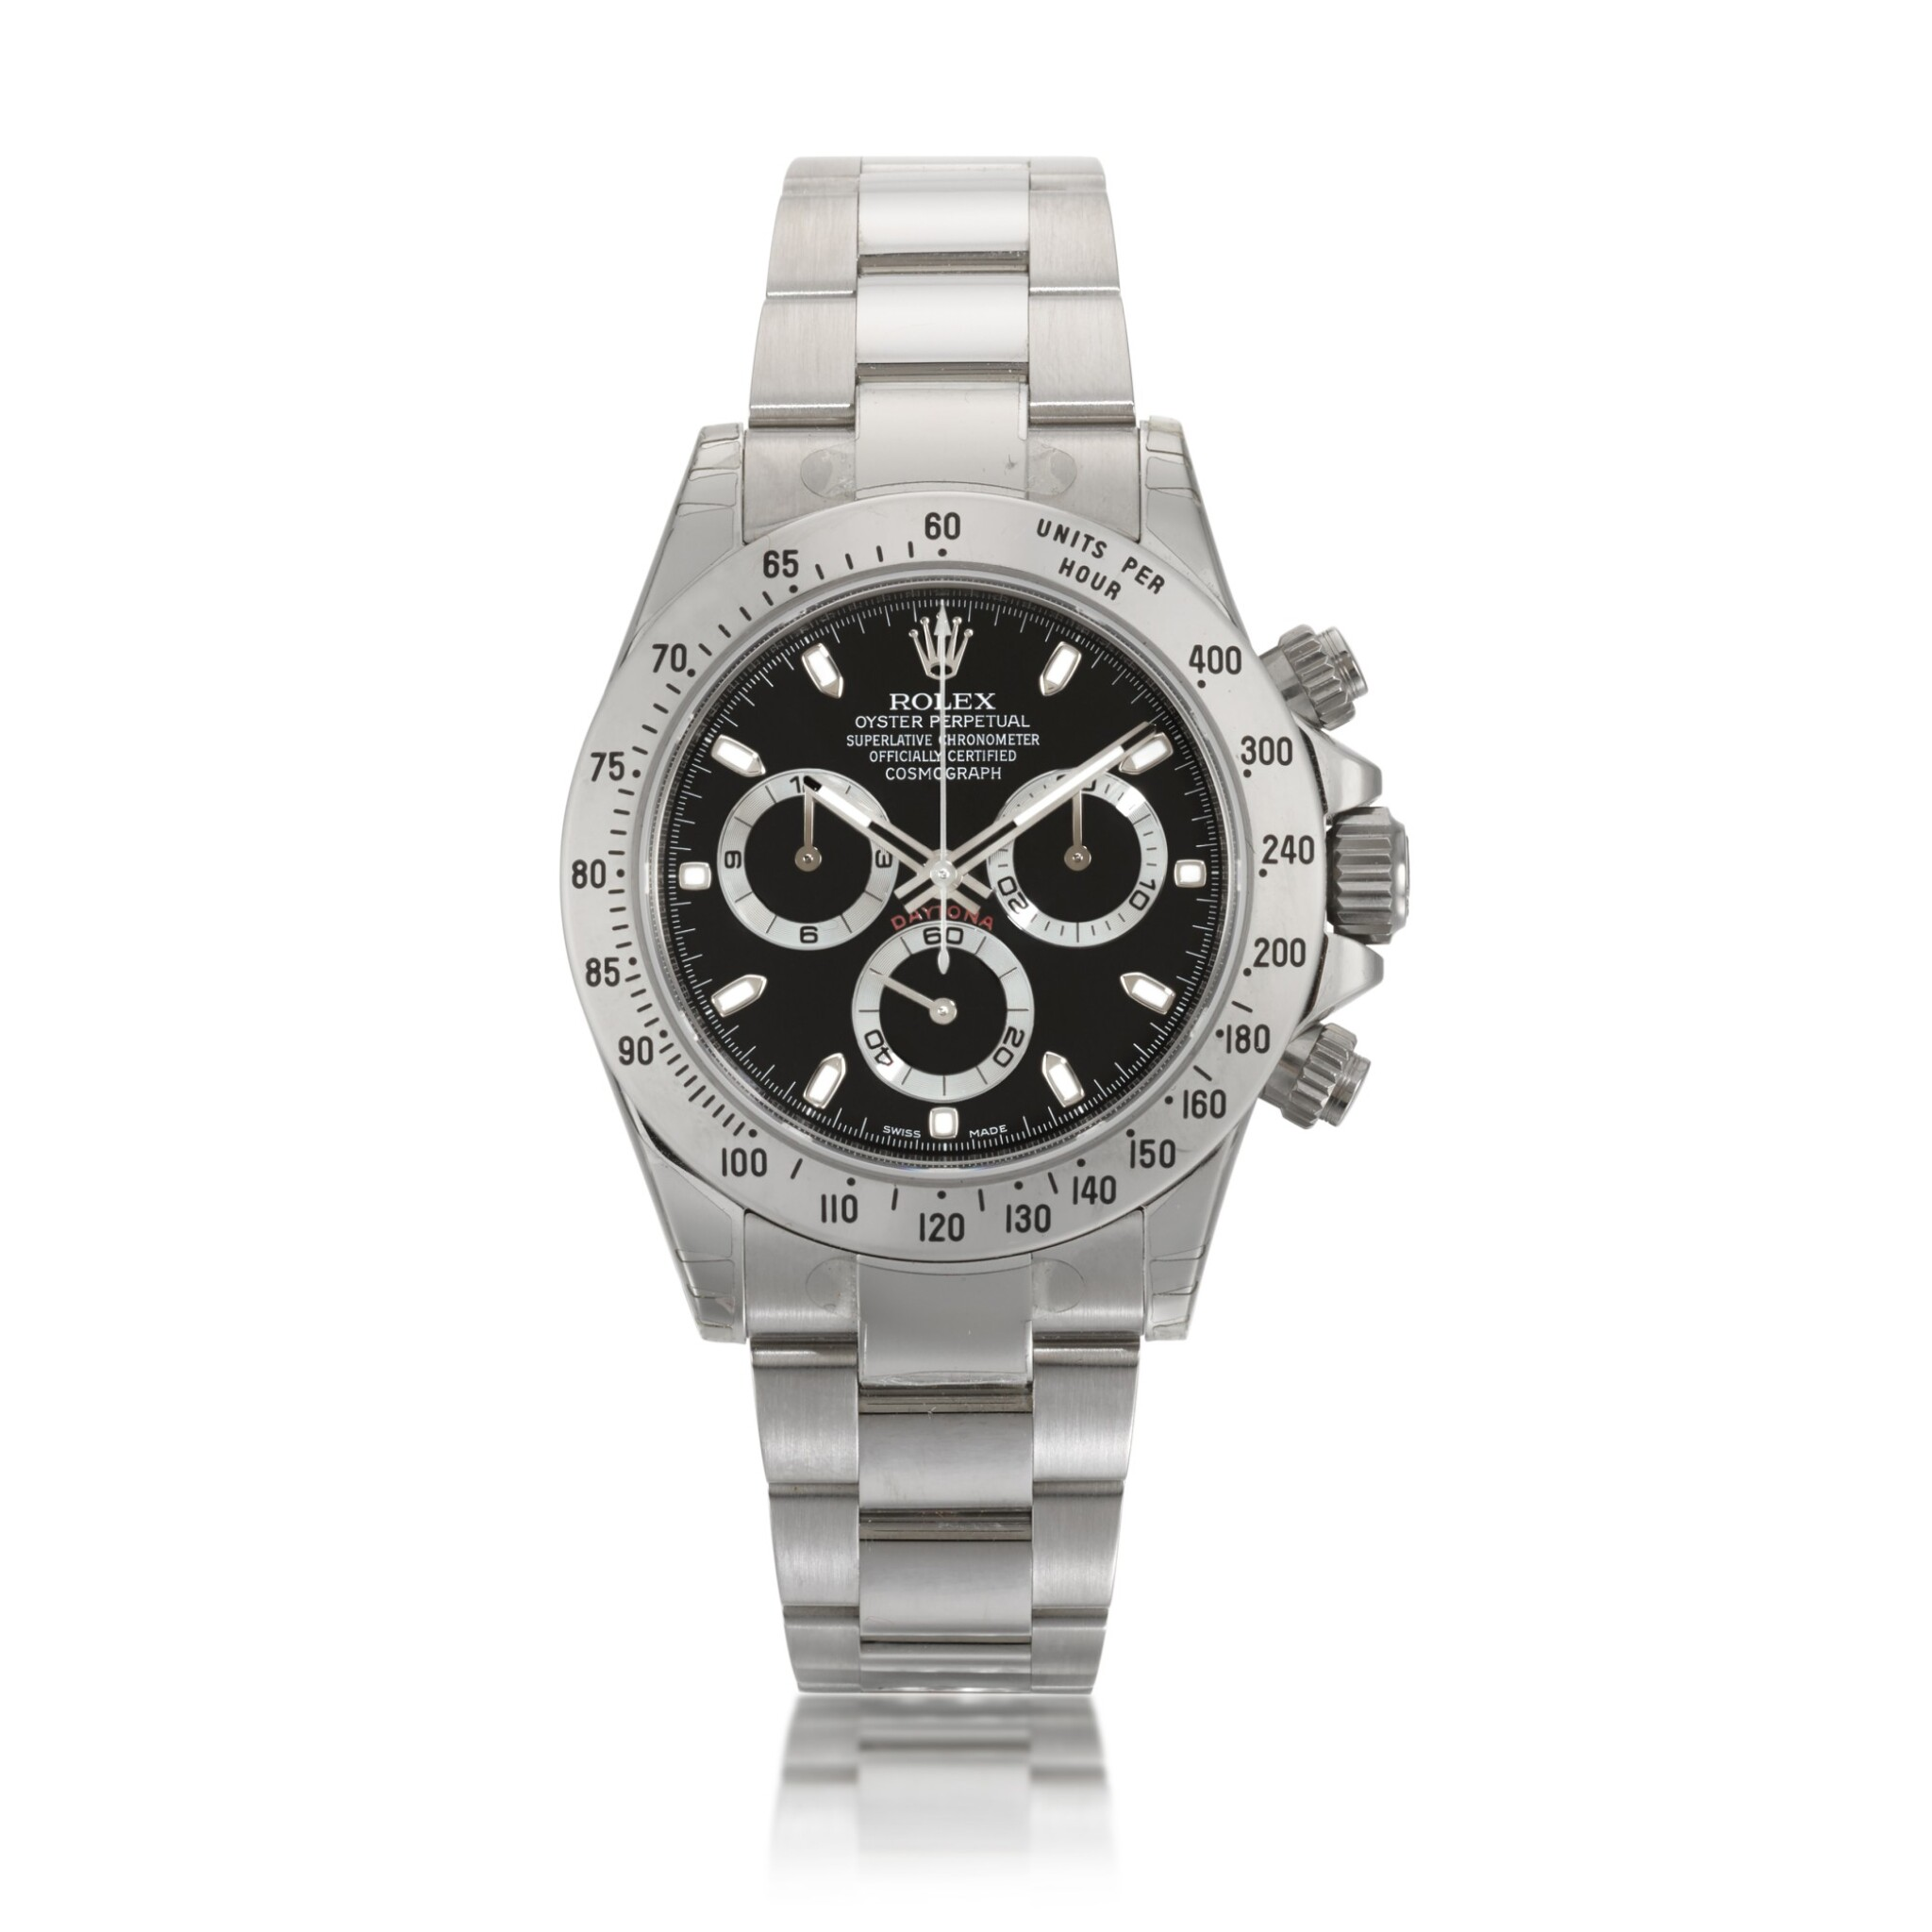 View full screen - View 1 of Lot 3. Daytona, Ref. 116520 Stainless Steel Chronograph Wristwatch With Bracelet Circa 2010.